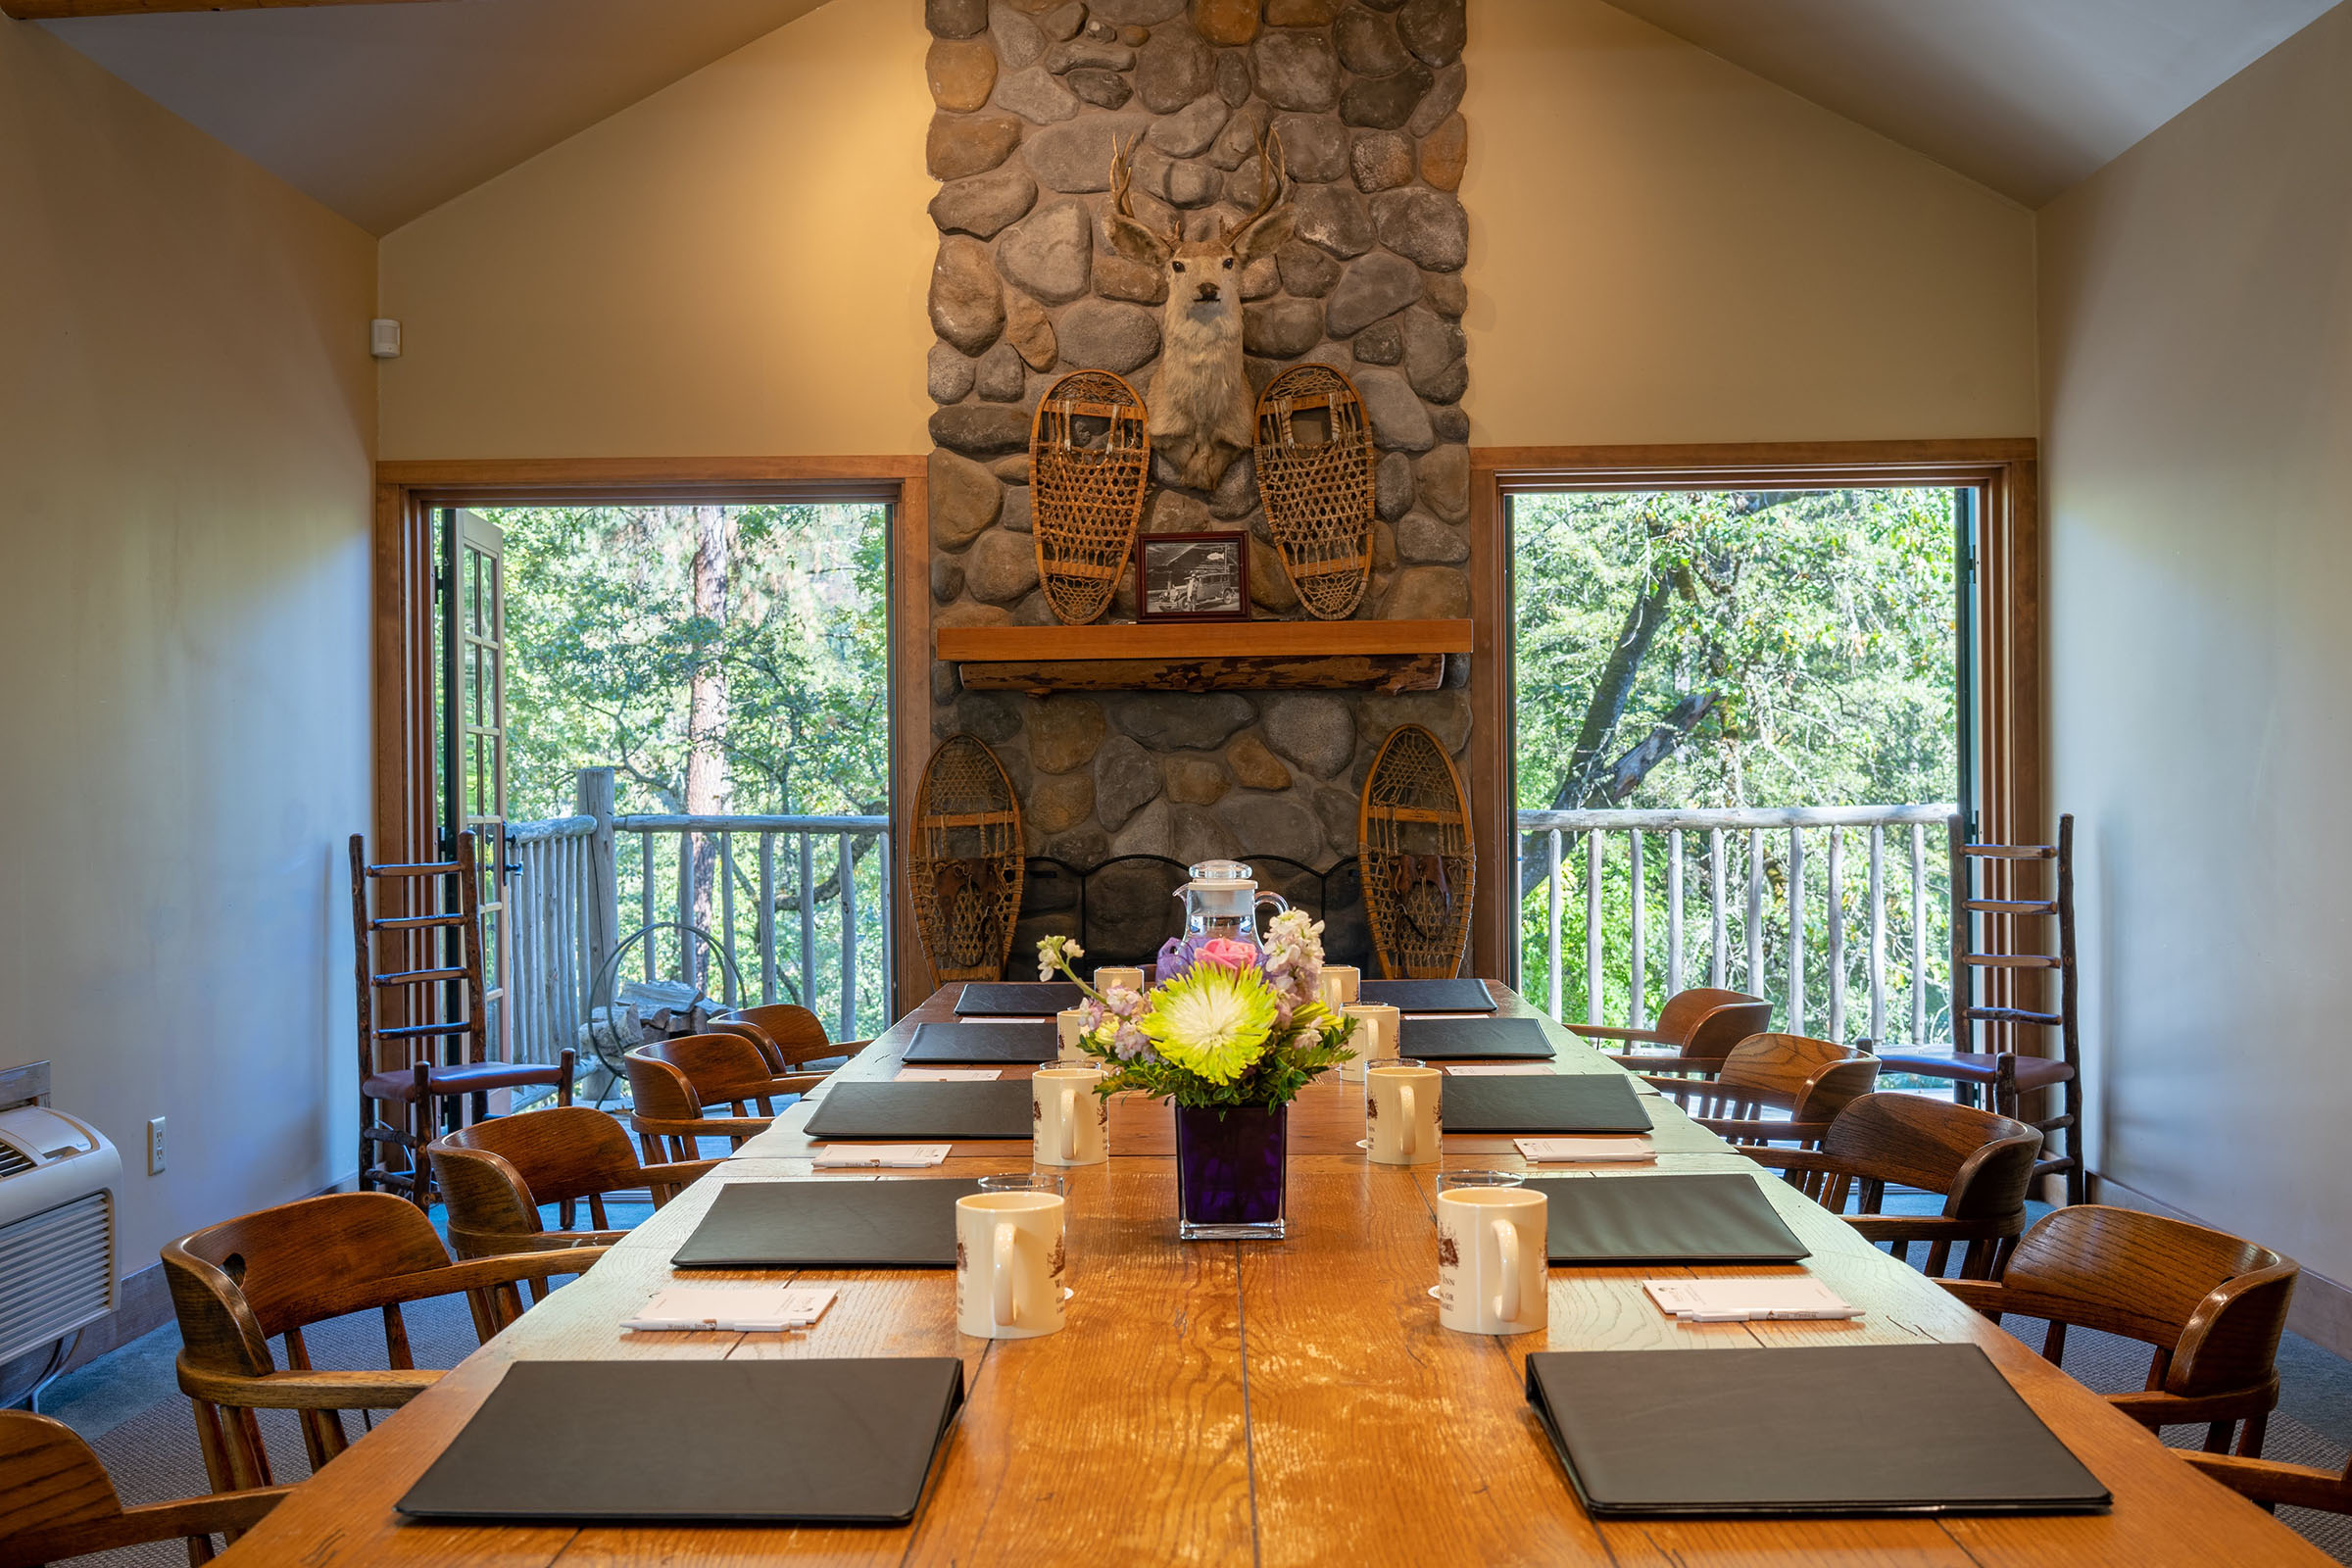 The boardroom interior maintains the rustic lodge atmosphere